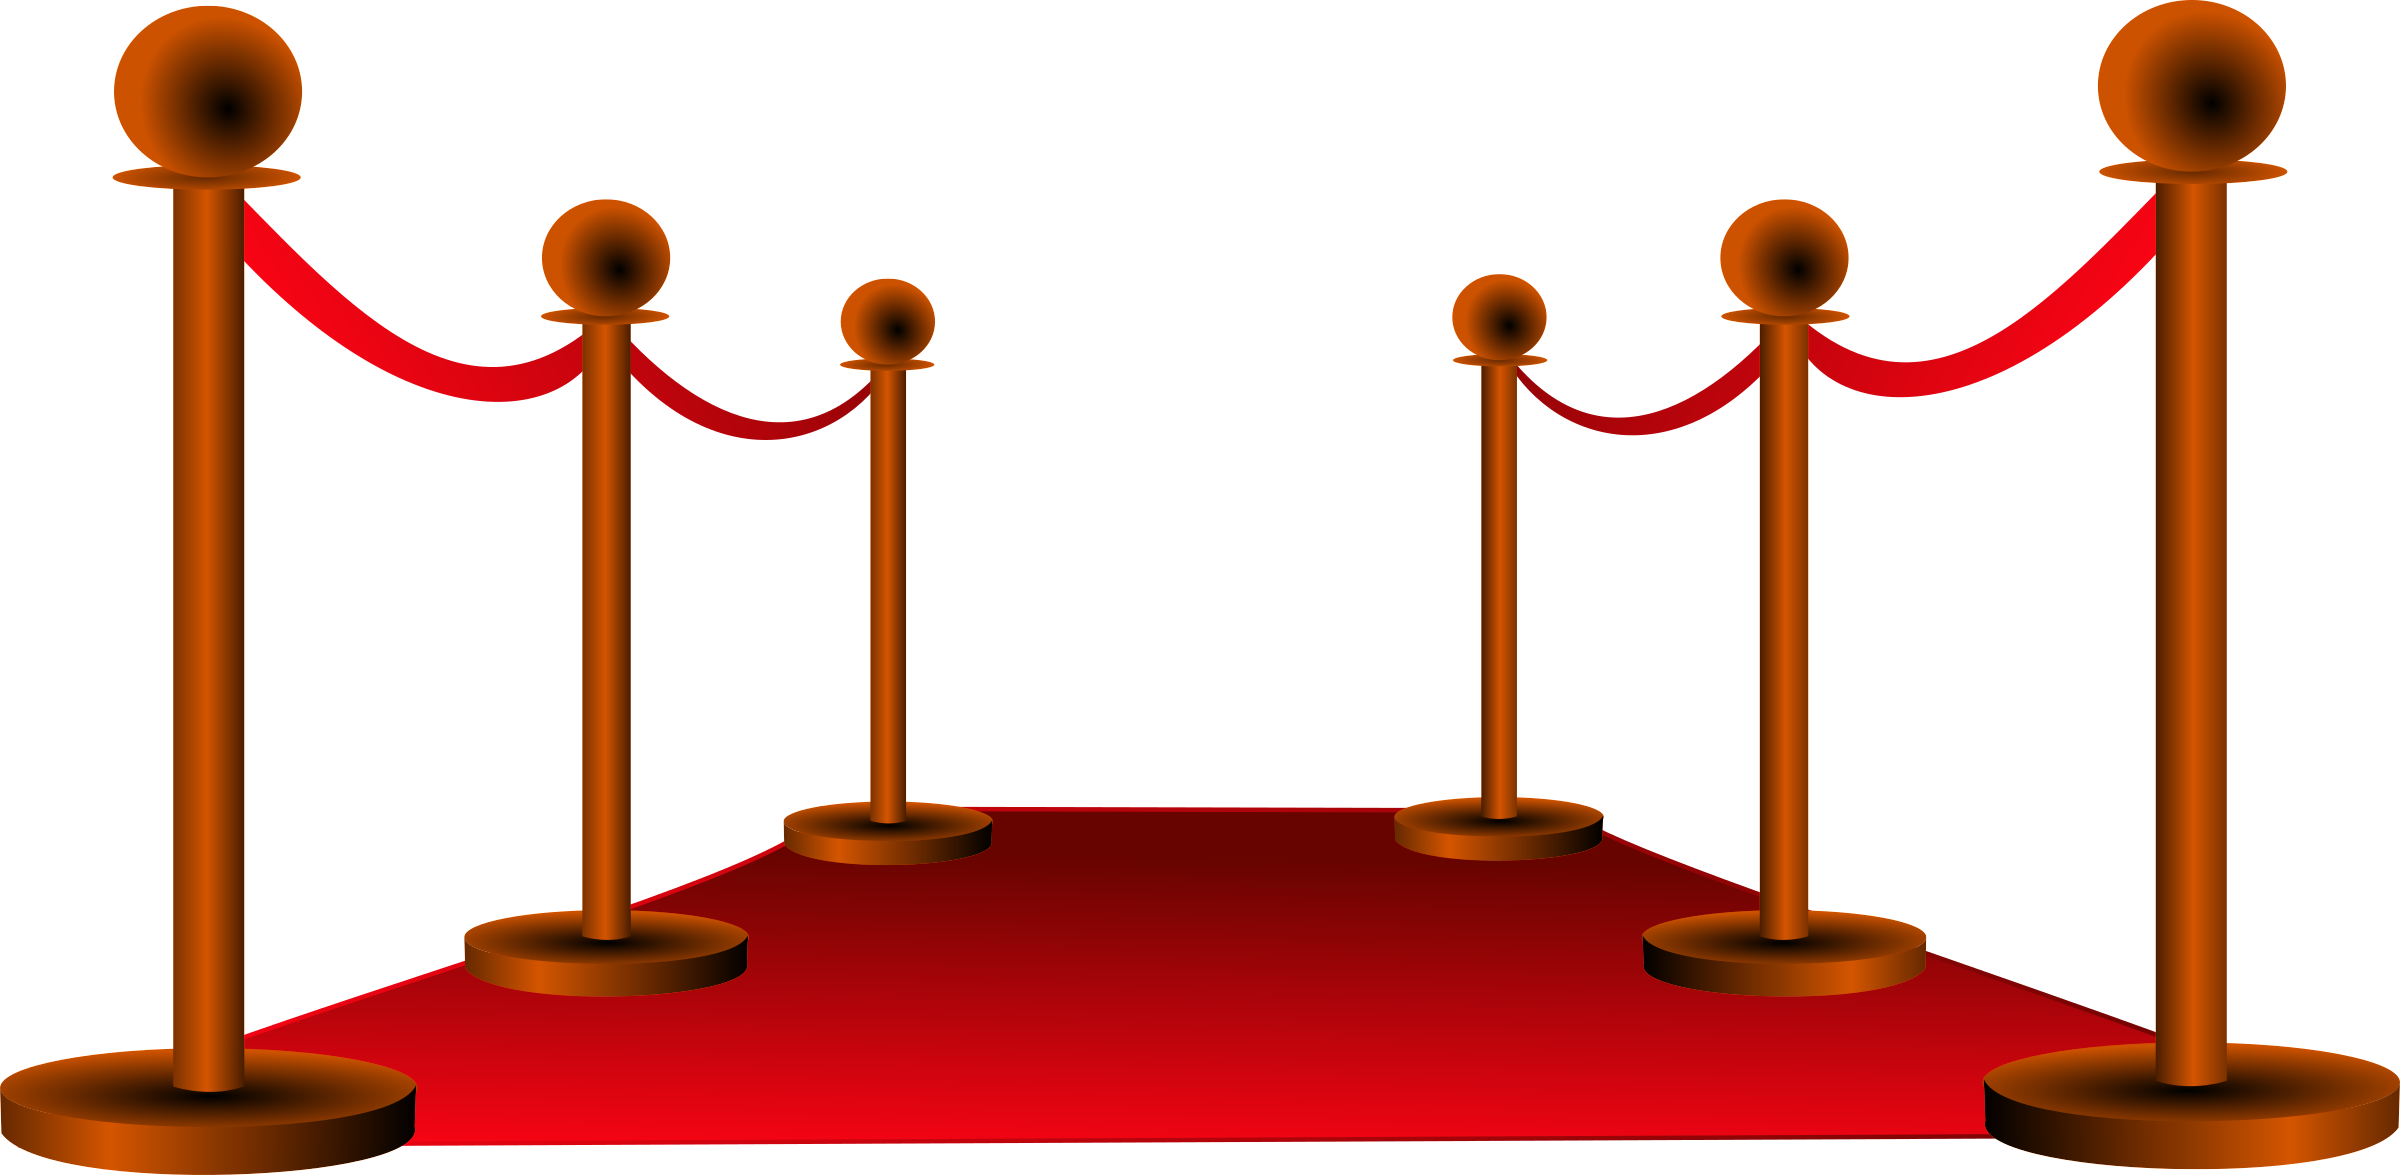 Red Carpet clipart Inspiration Carpet and Clipart Clipart